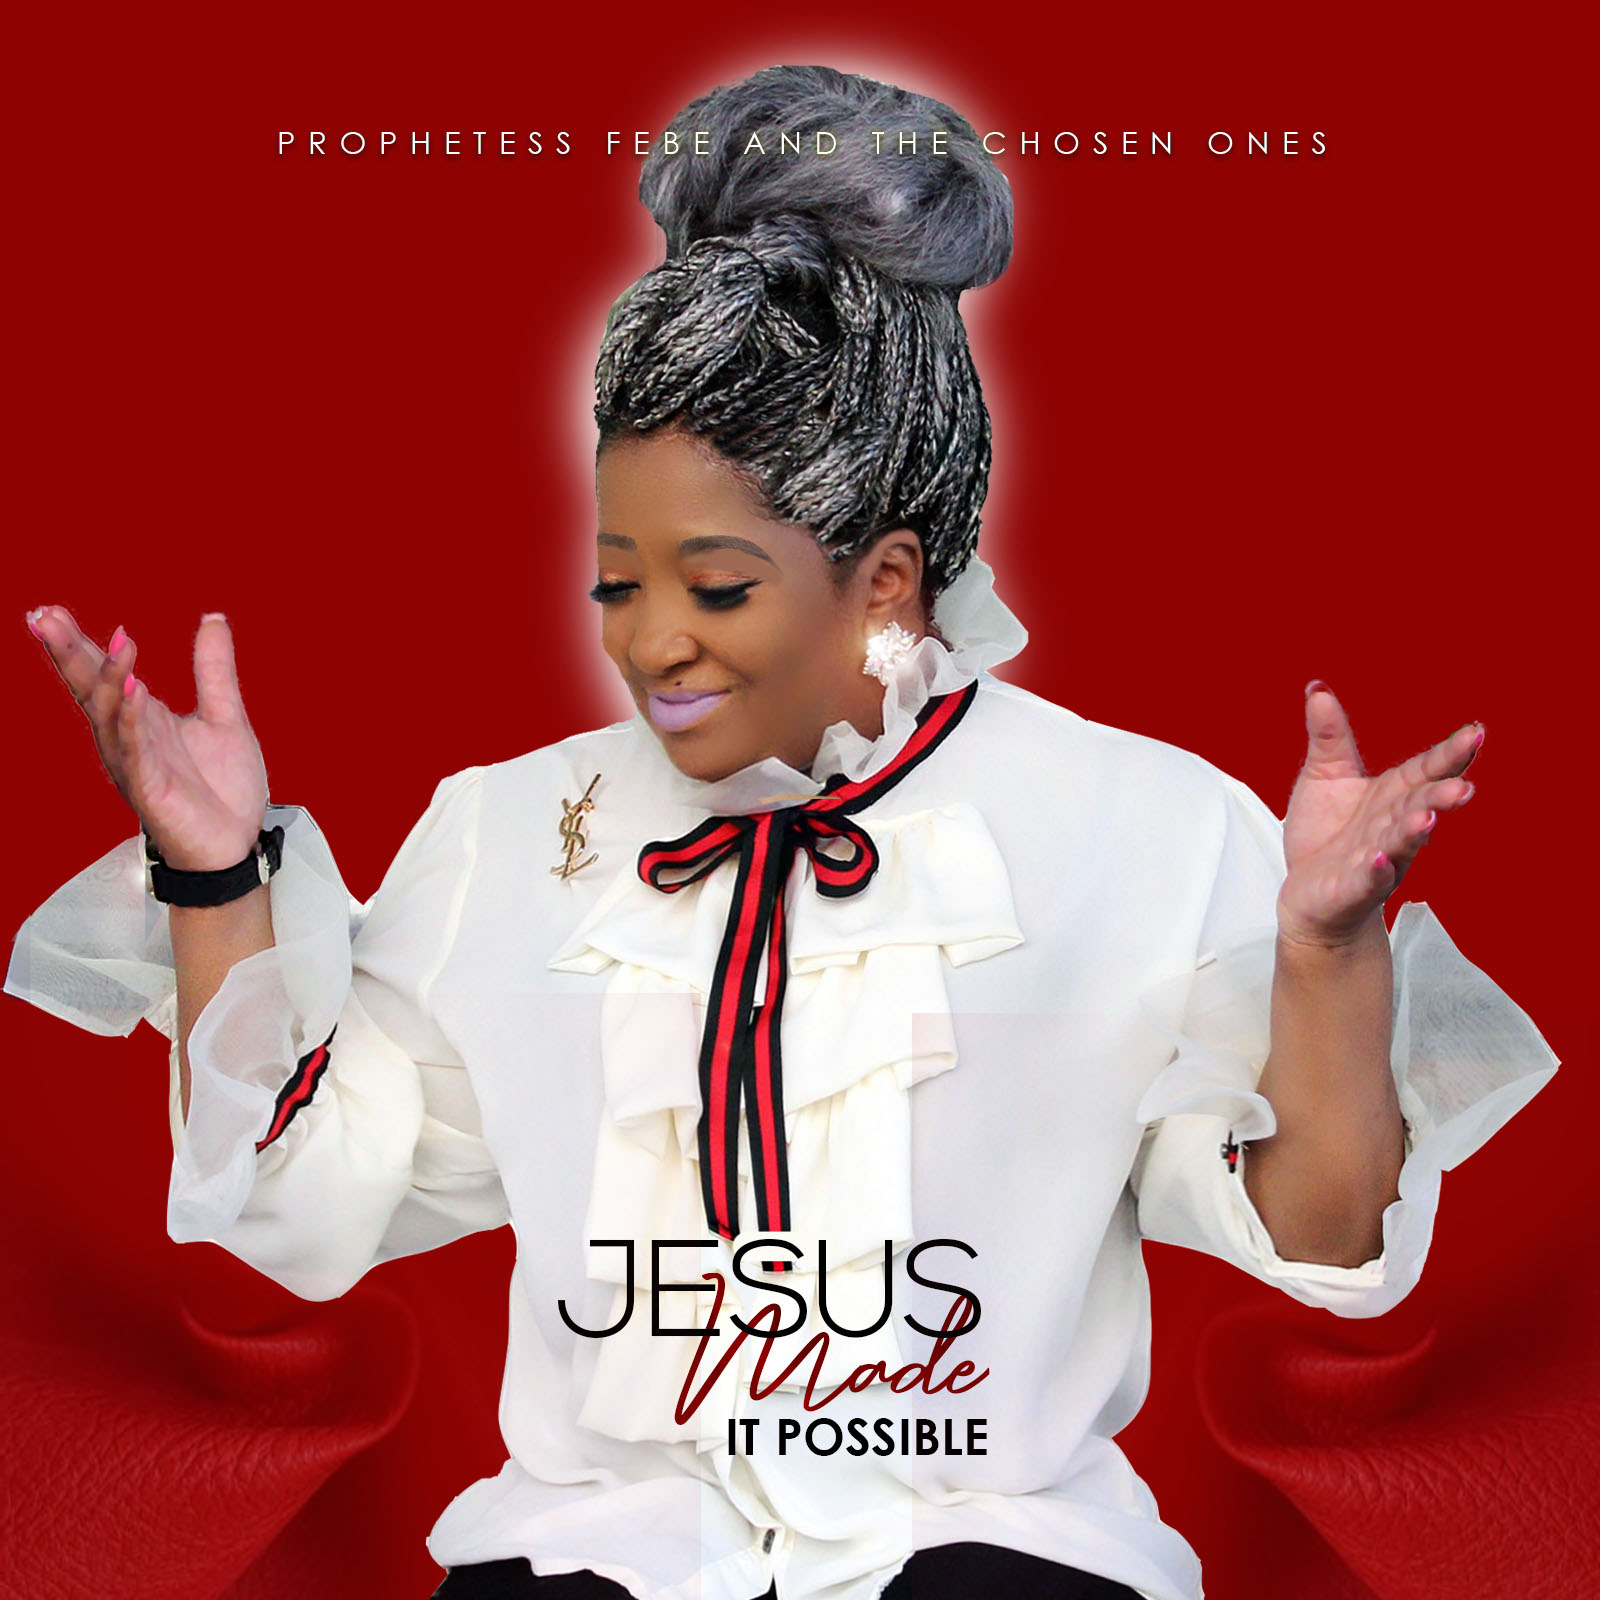 Art for Jesus Made It Possible by Prophetess Febe And The Chosen Ones